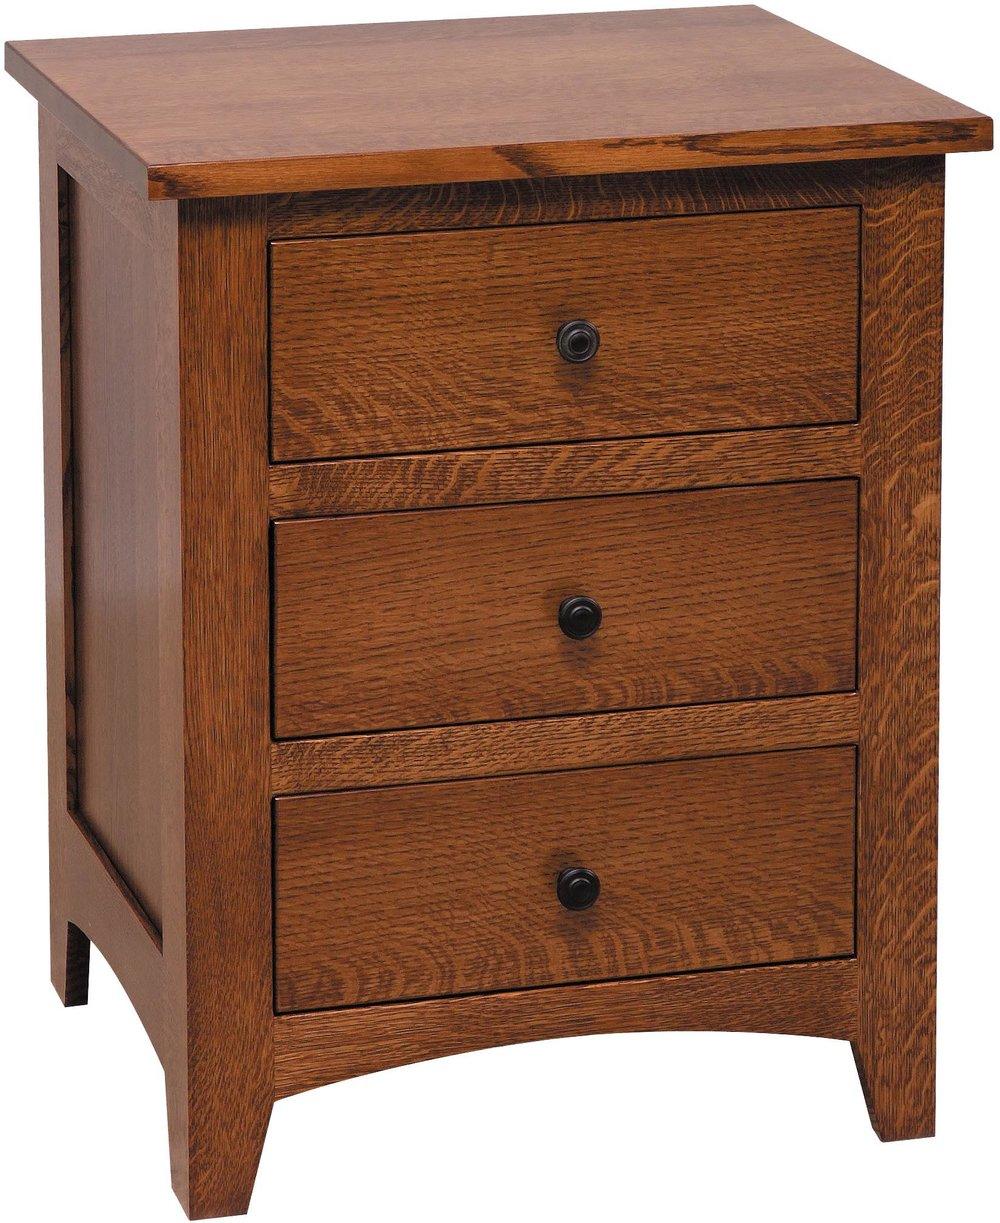 master bedroom furniture for sale in Greenville, Pennsylvania